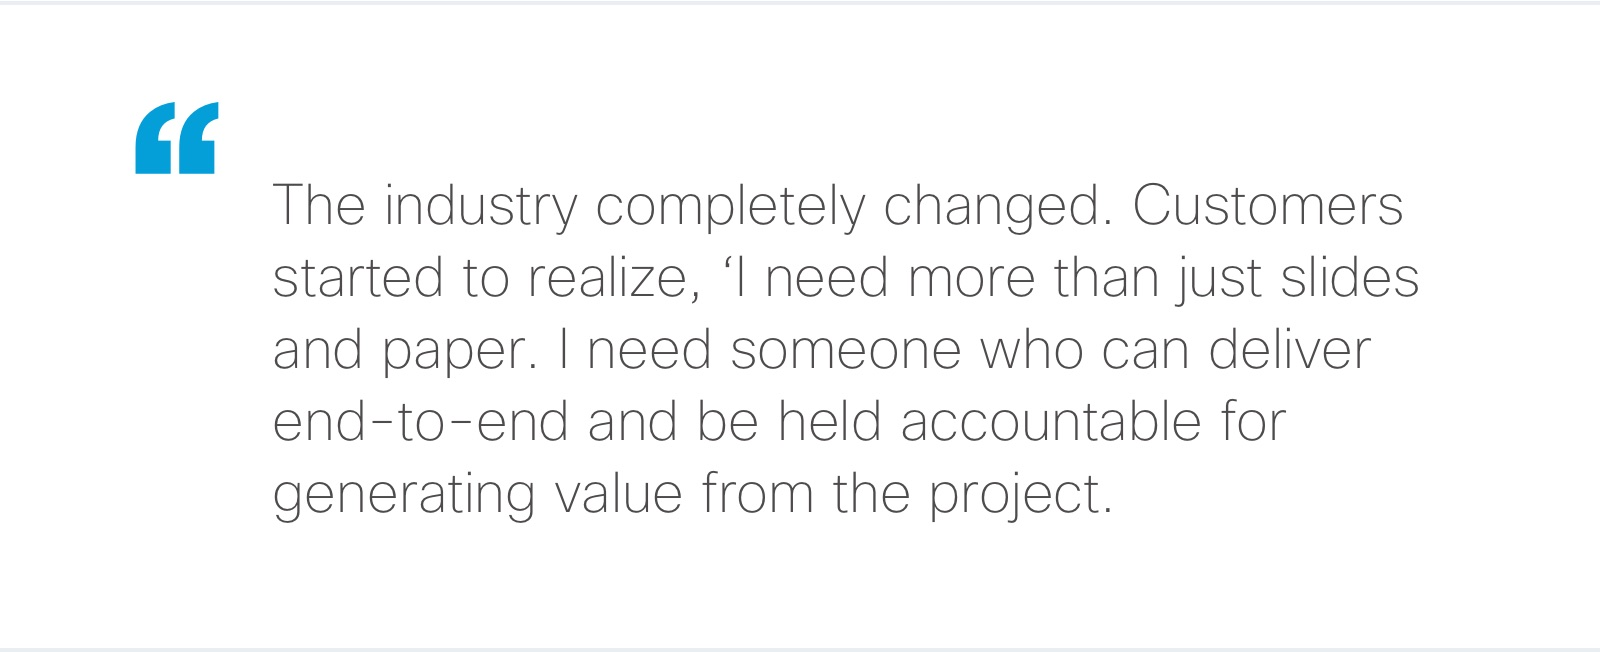 """""""The industry completely changed. Customers started to realize, 'I need more than just slides and paper. I need someone who can deliver end-to-end and be held accountable for generating value from the project.'"""""""